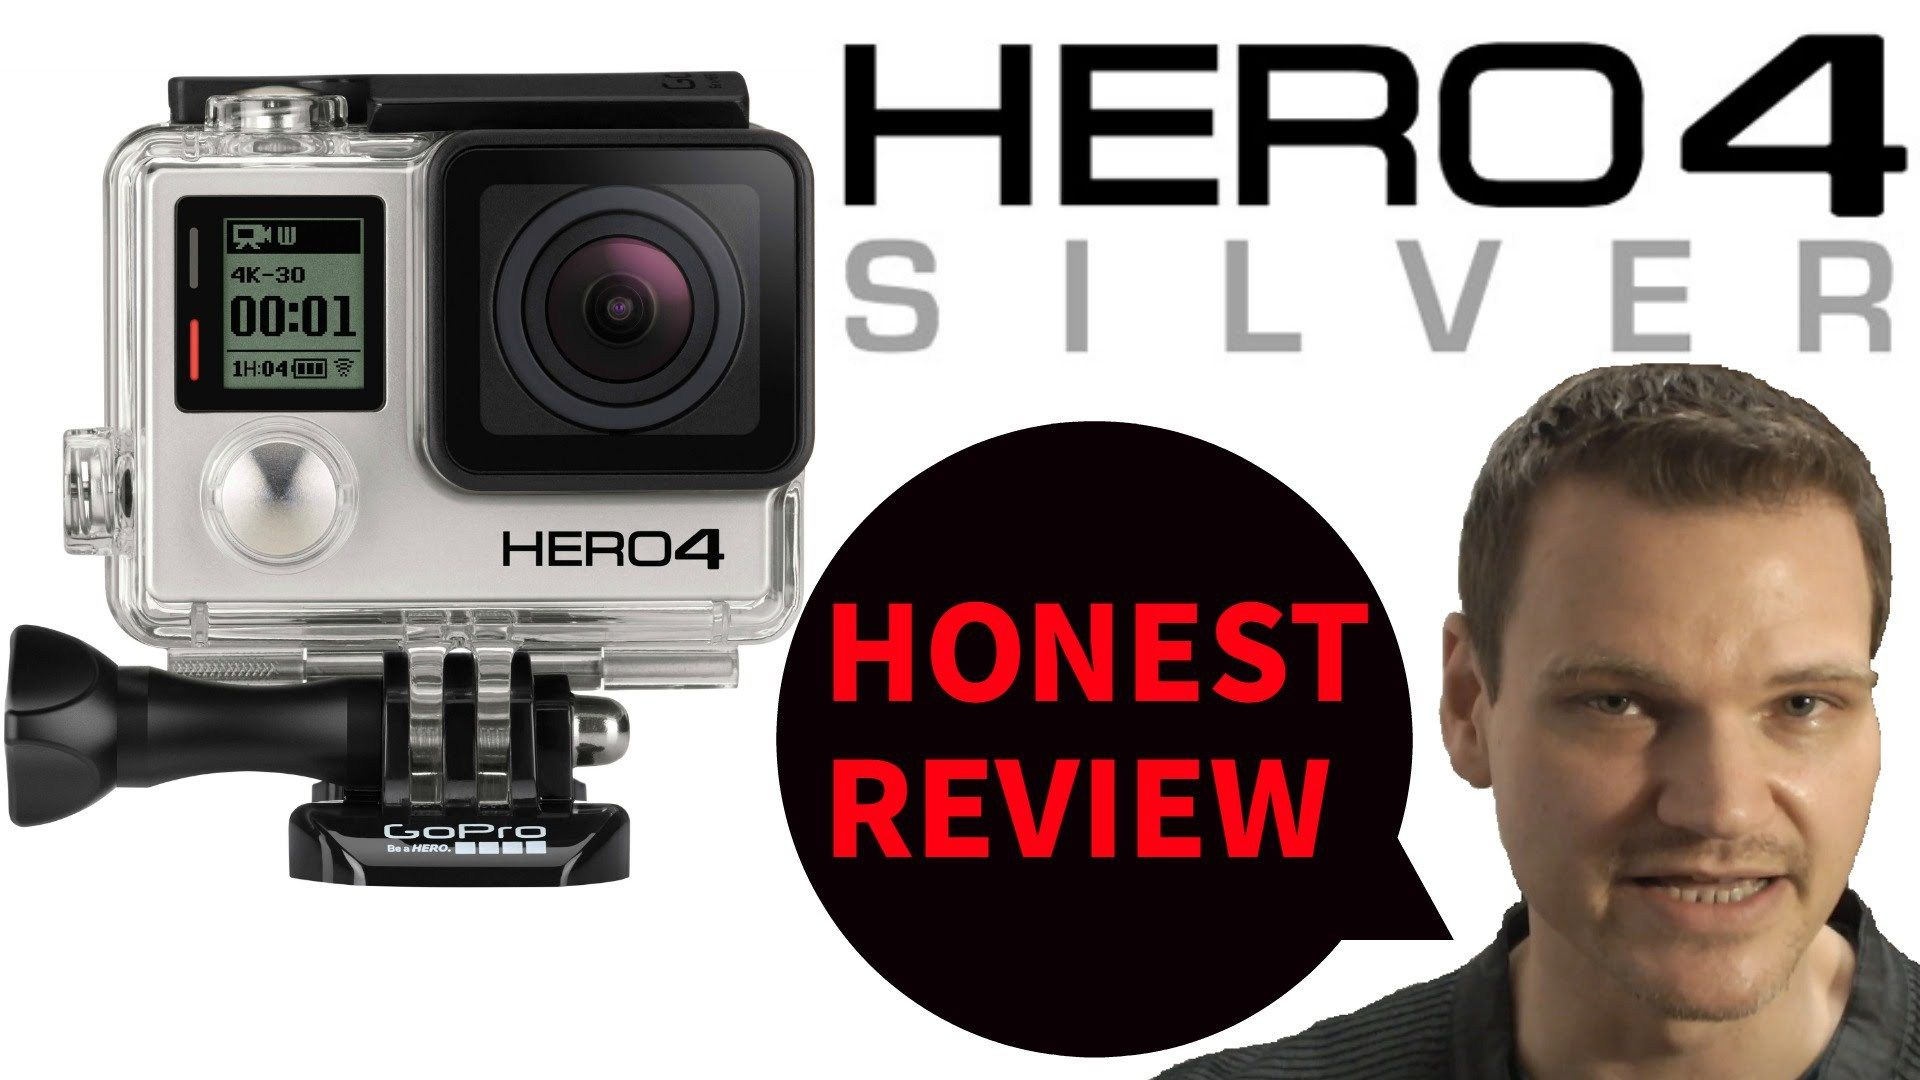 Gopro Hero 4 Silver For Sale Philippines Before You Buy Gopro Hero 4 Silver Edition Watch Video Here Http Pricephilippi Gopro Hero 4 Gopro Gopro Price